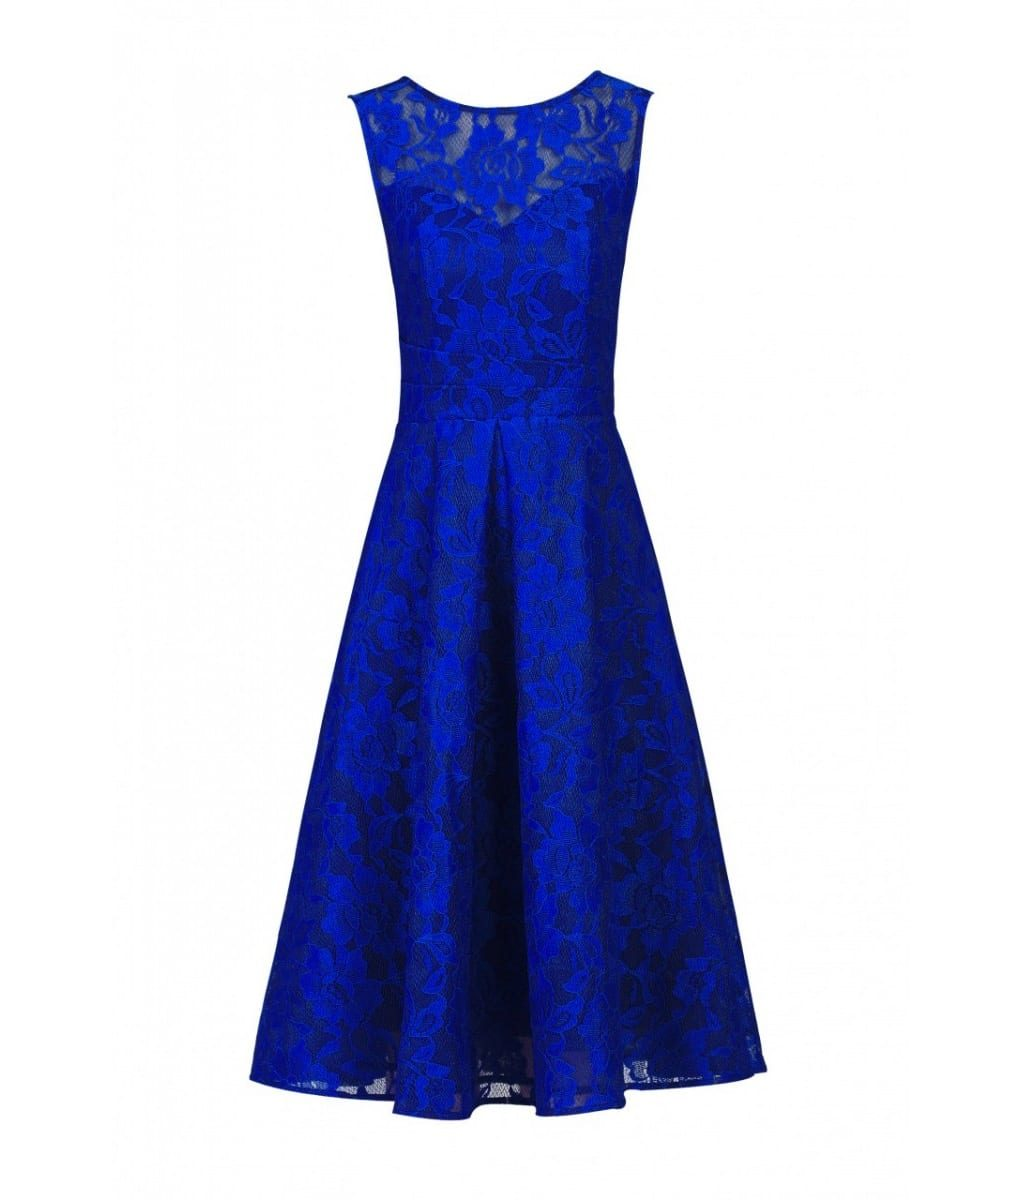 Alila-Lace-Bonded-Prom-Dress-ROYAL-BLUE-Jolie-Moi